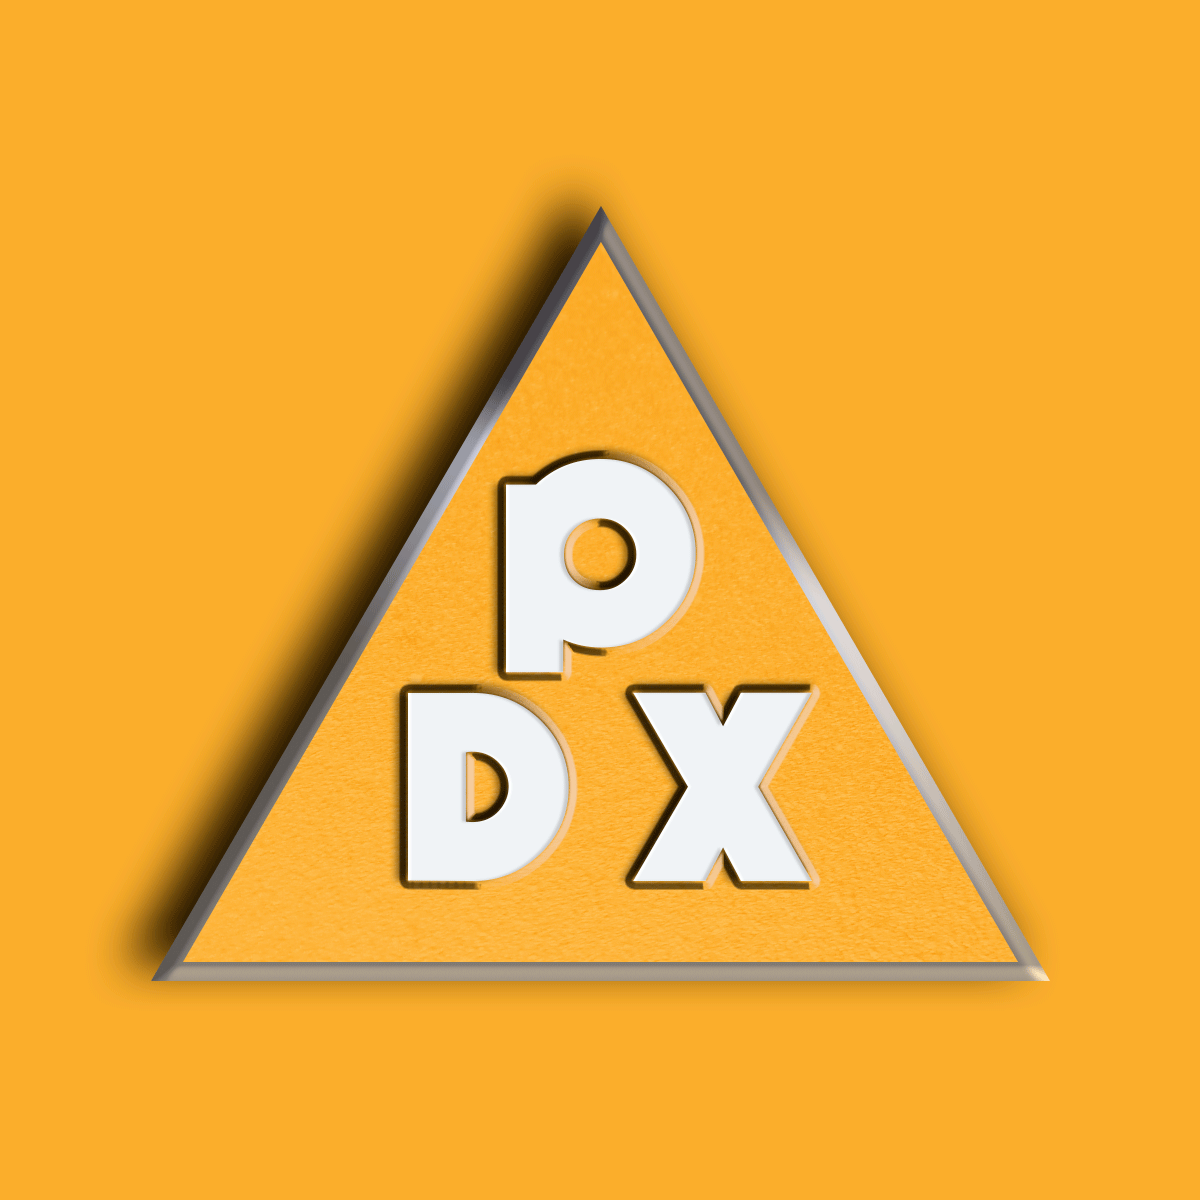 ACG_PIN_PDX.png